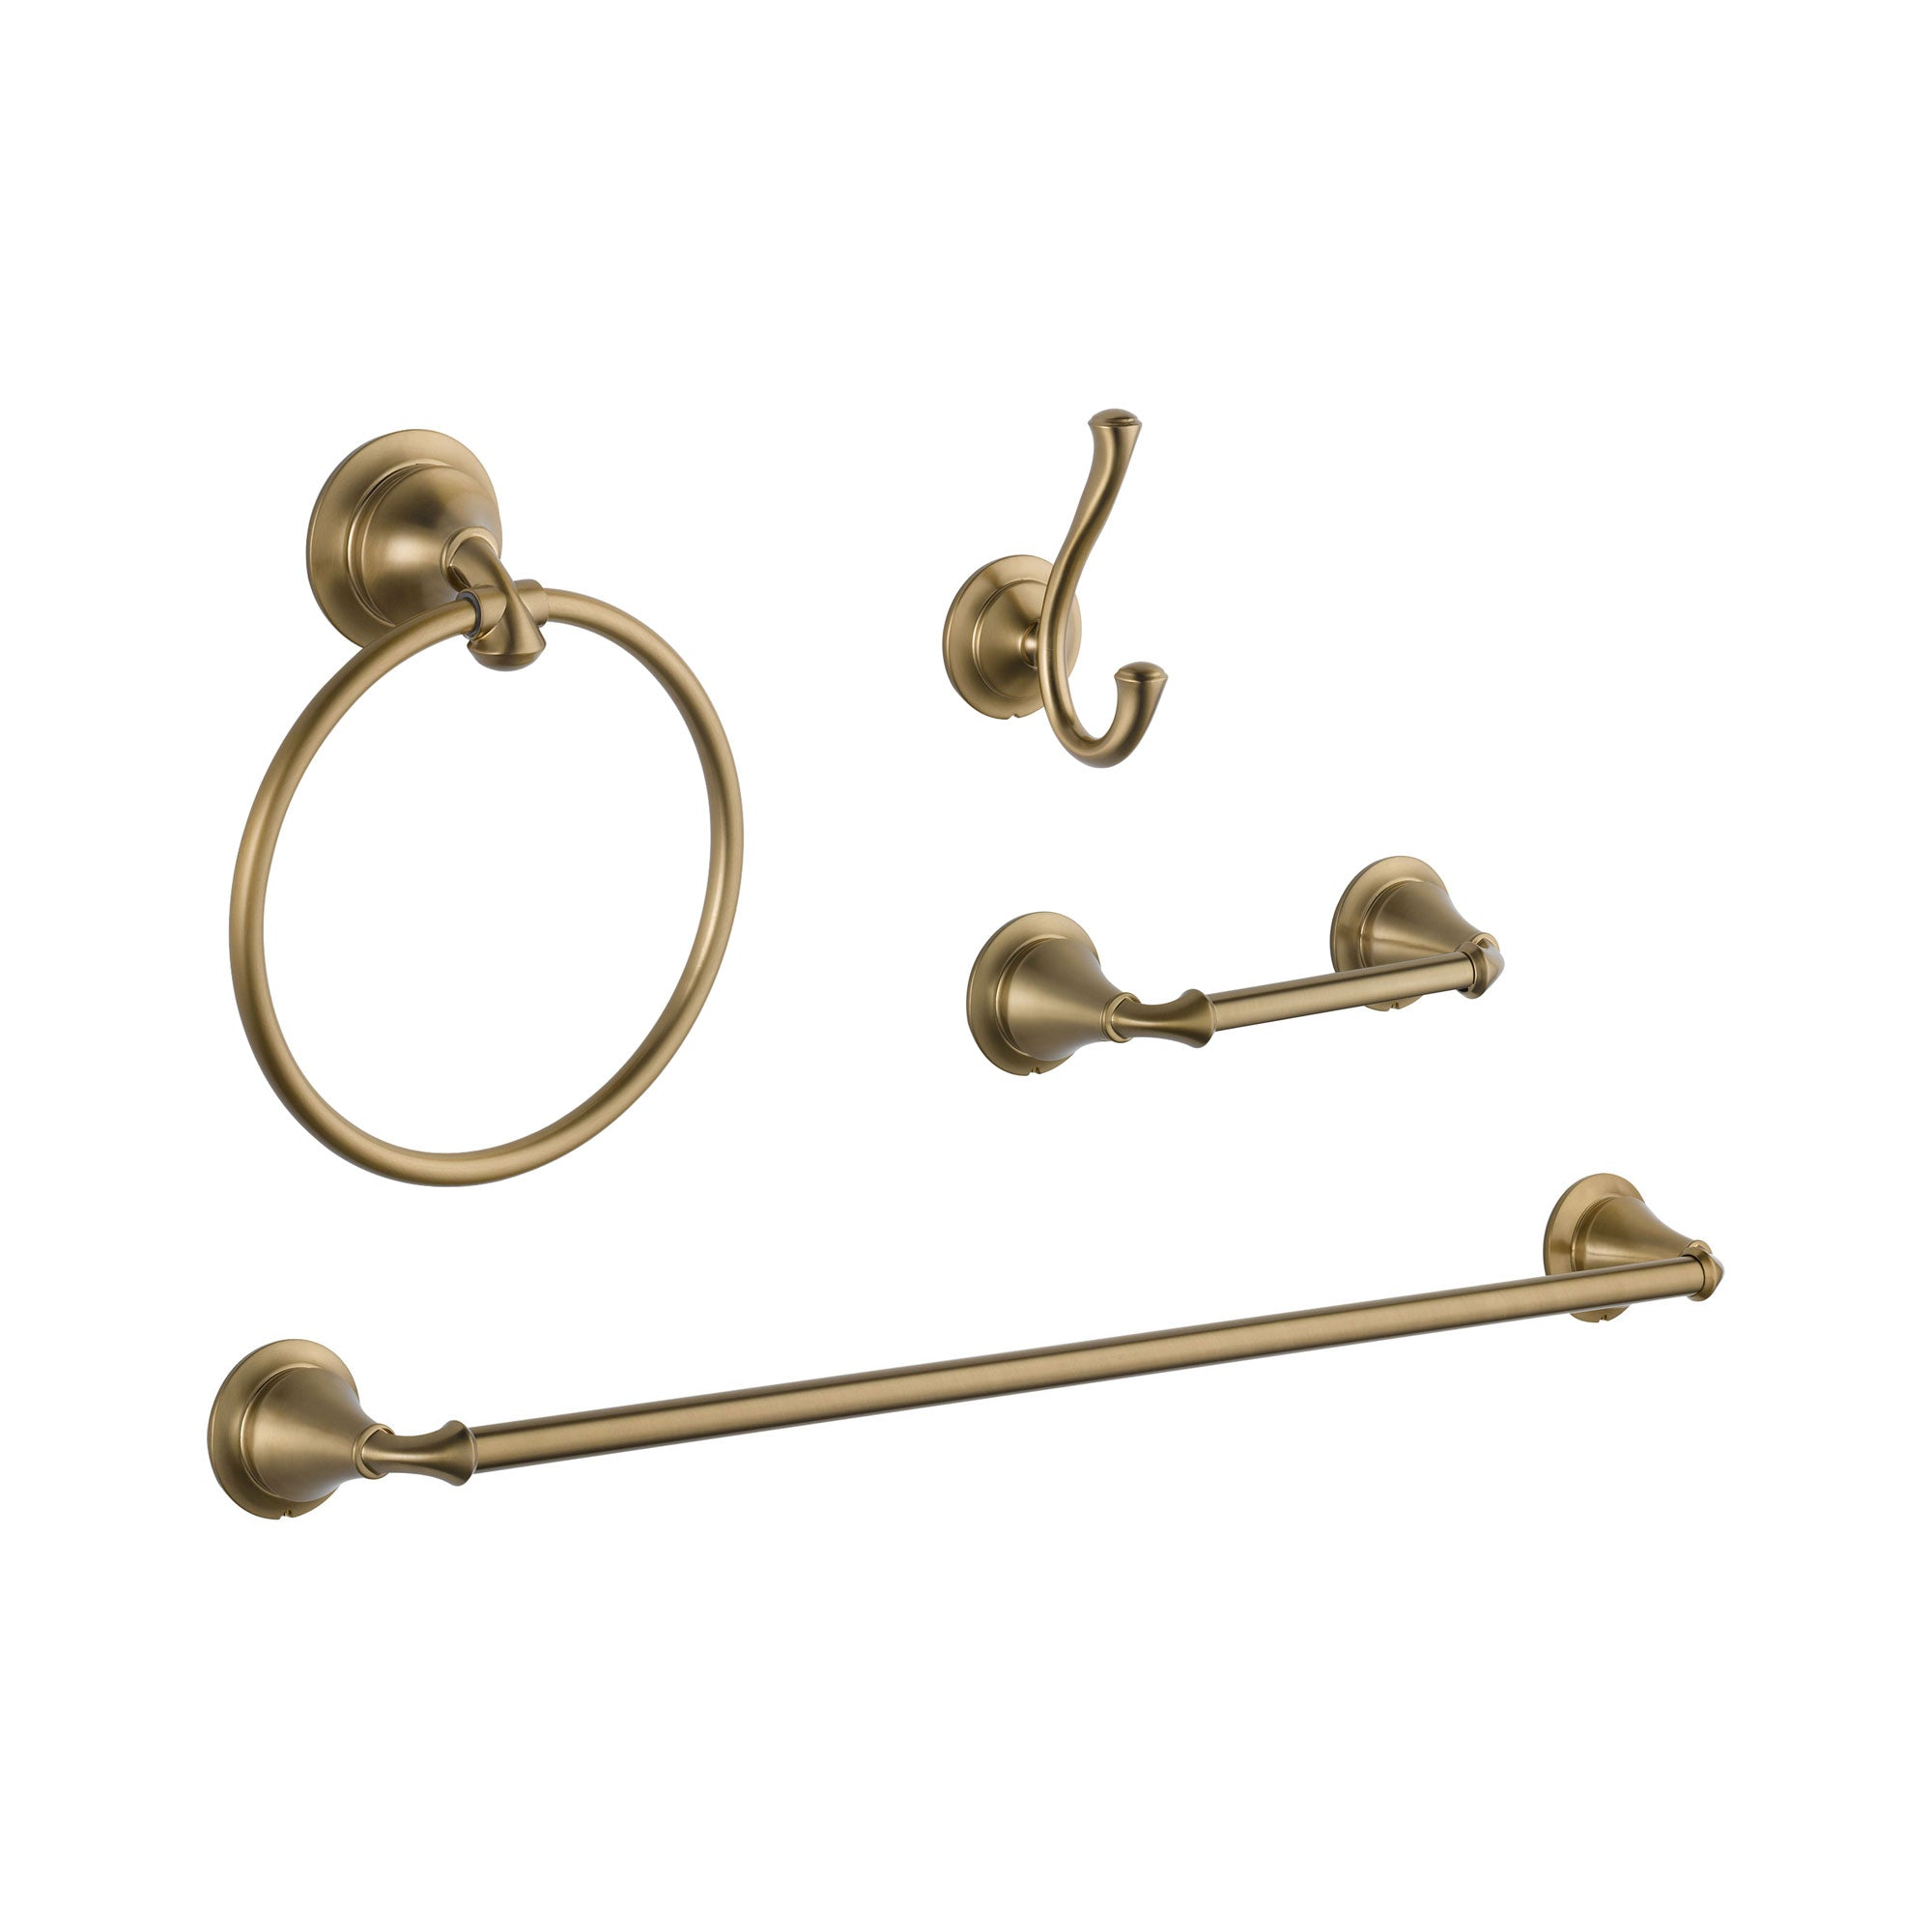 "Delta Linden Champagne Bronze STANDARD Bathroom Accessory Set Includes: 24"" Towel Bar, Toilet Paper Holder, Robe Hook, and Towel Ring D10103AP"